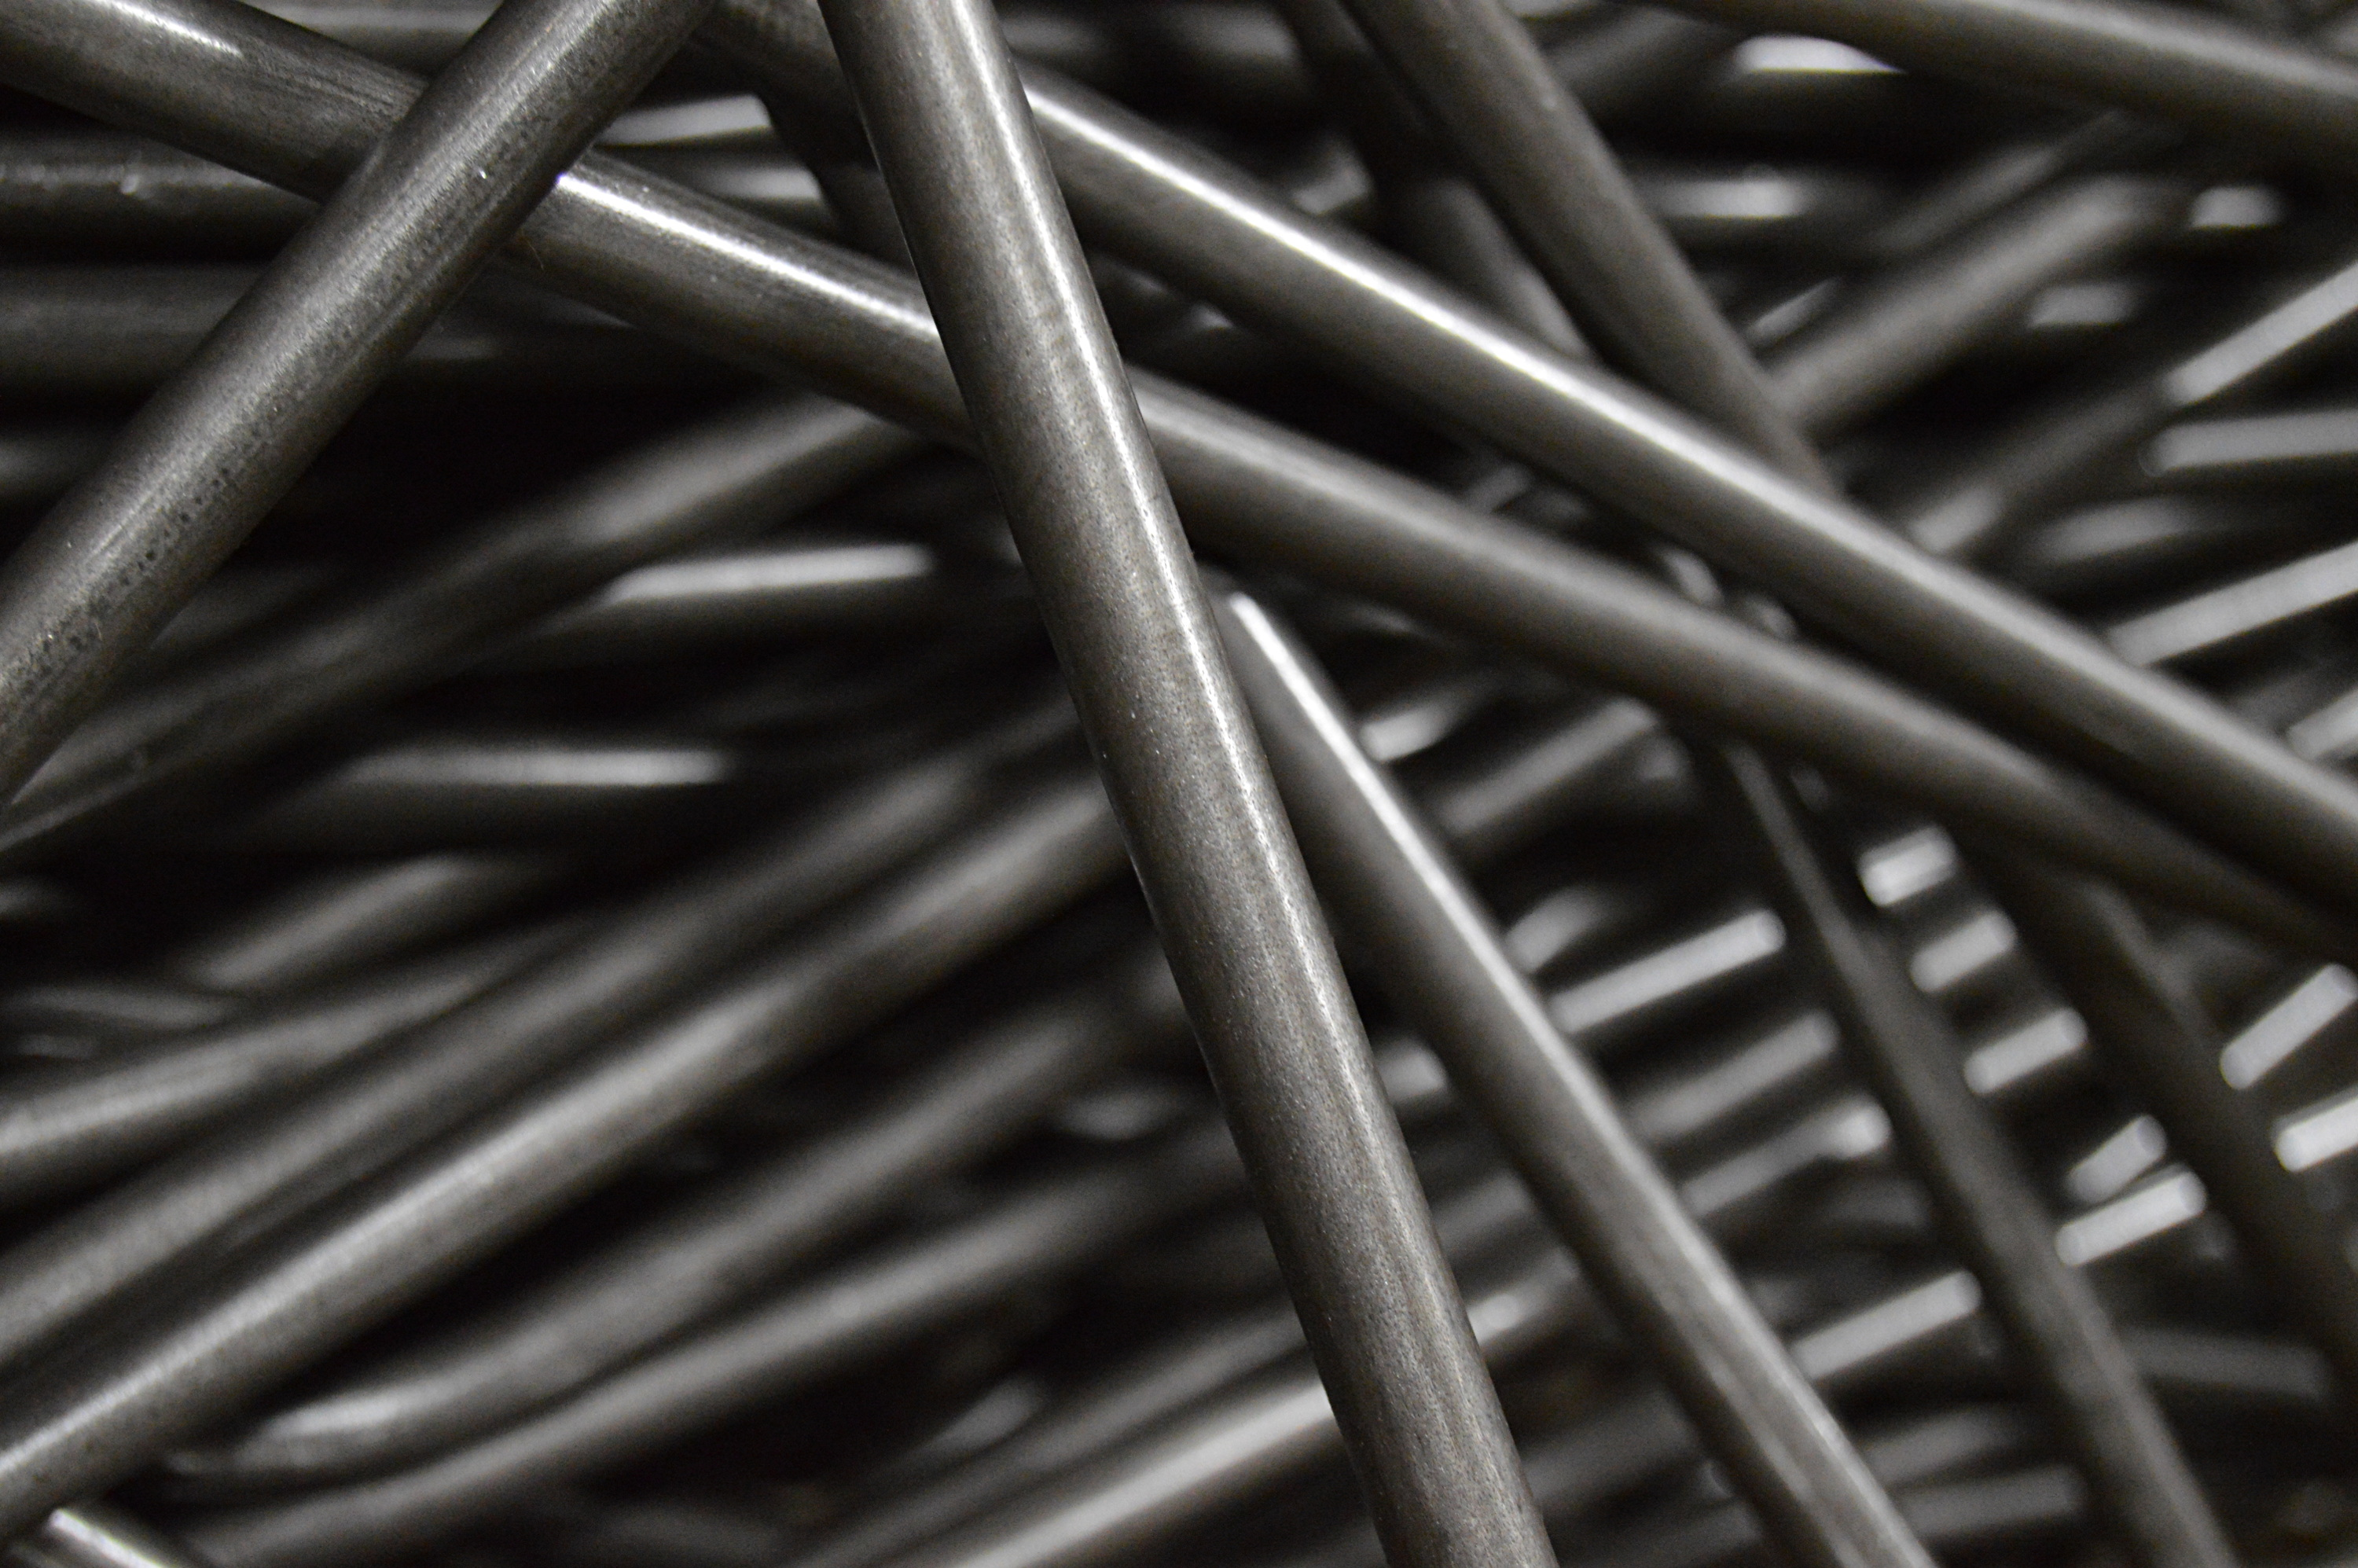 Tubular steel common applications uses for tubes